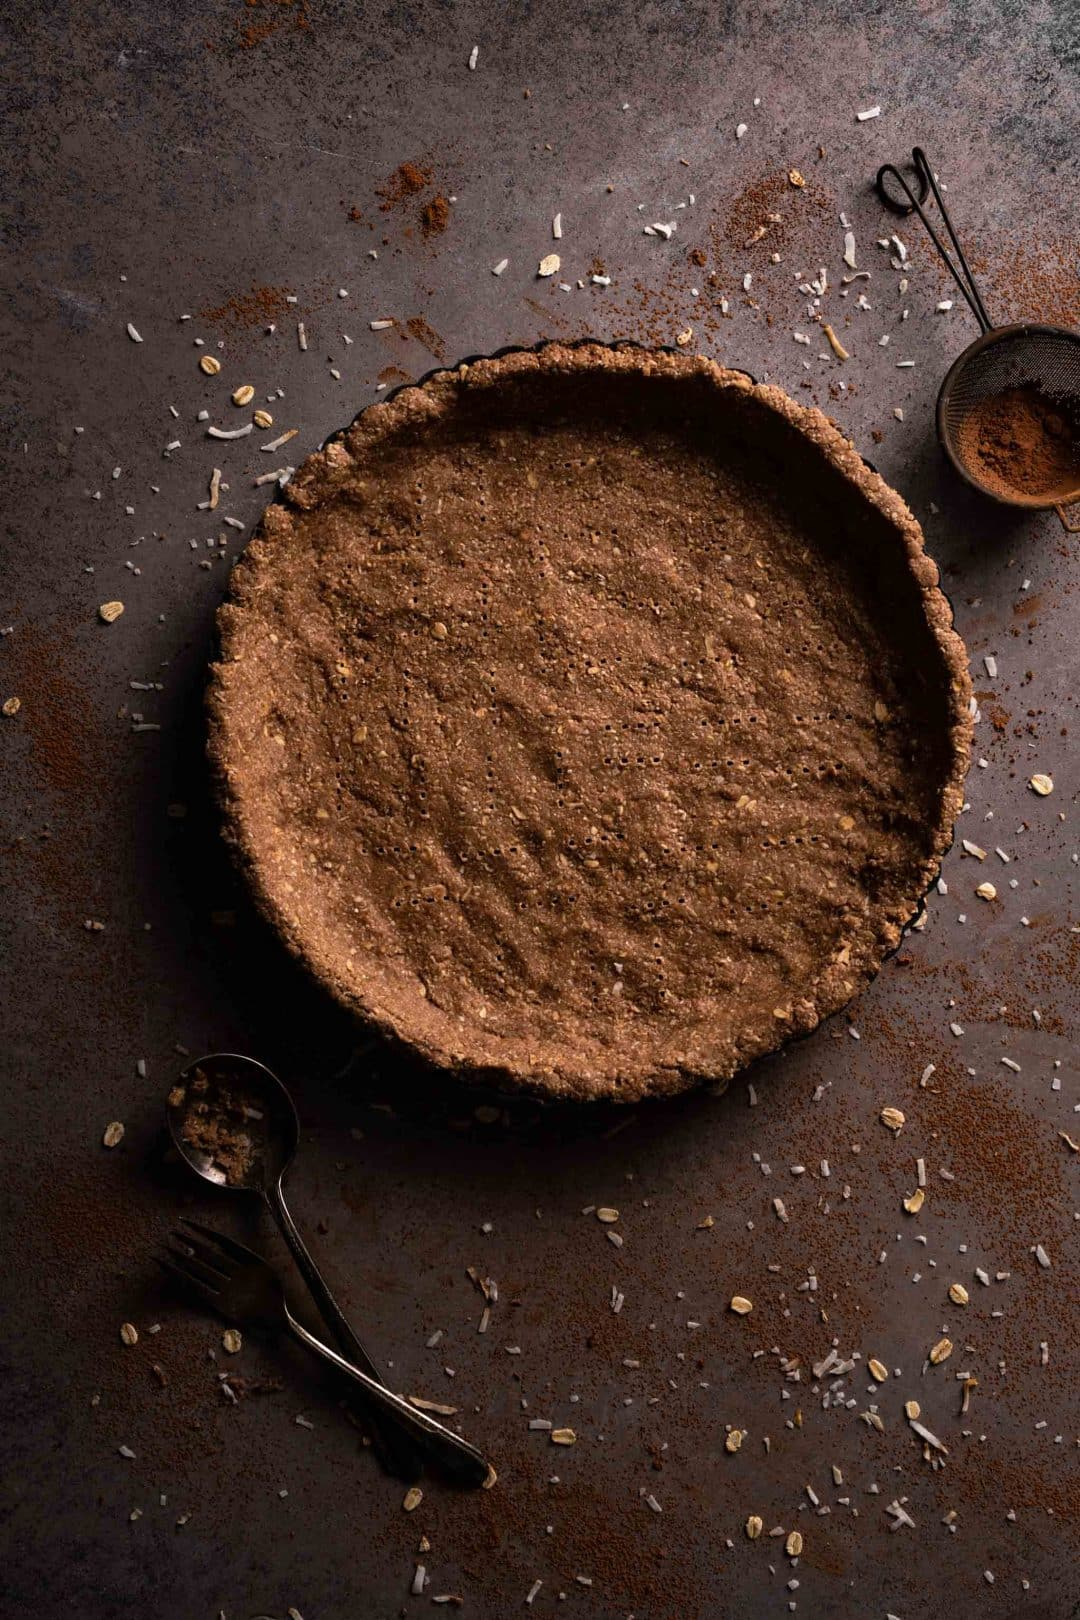 Chocolate Tart Crust Recipe that is vegan and gluten free.